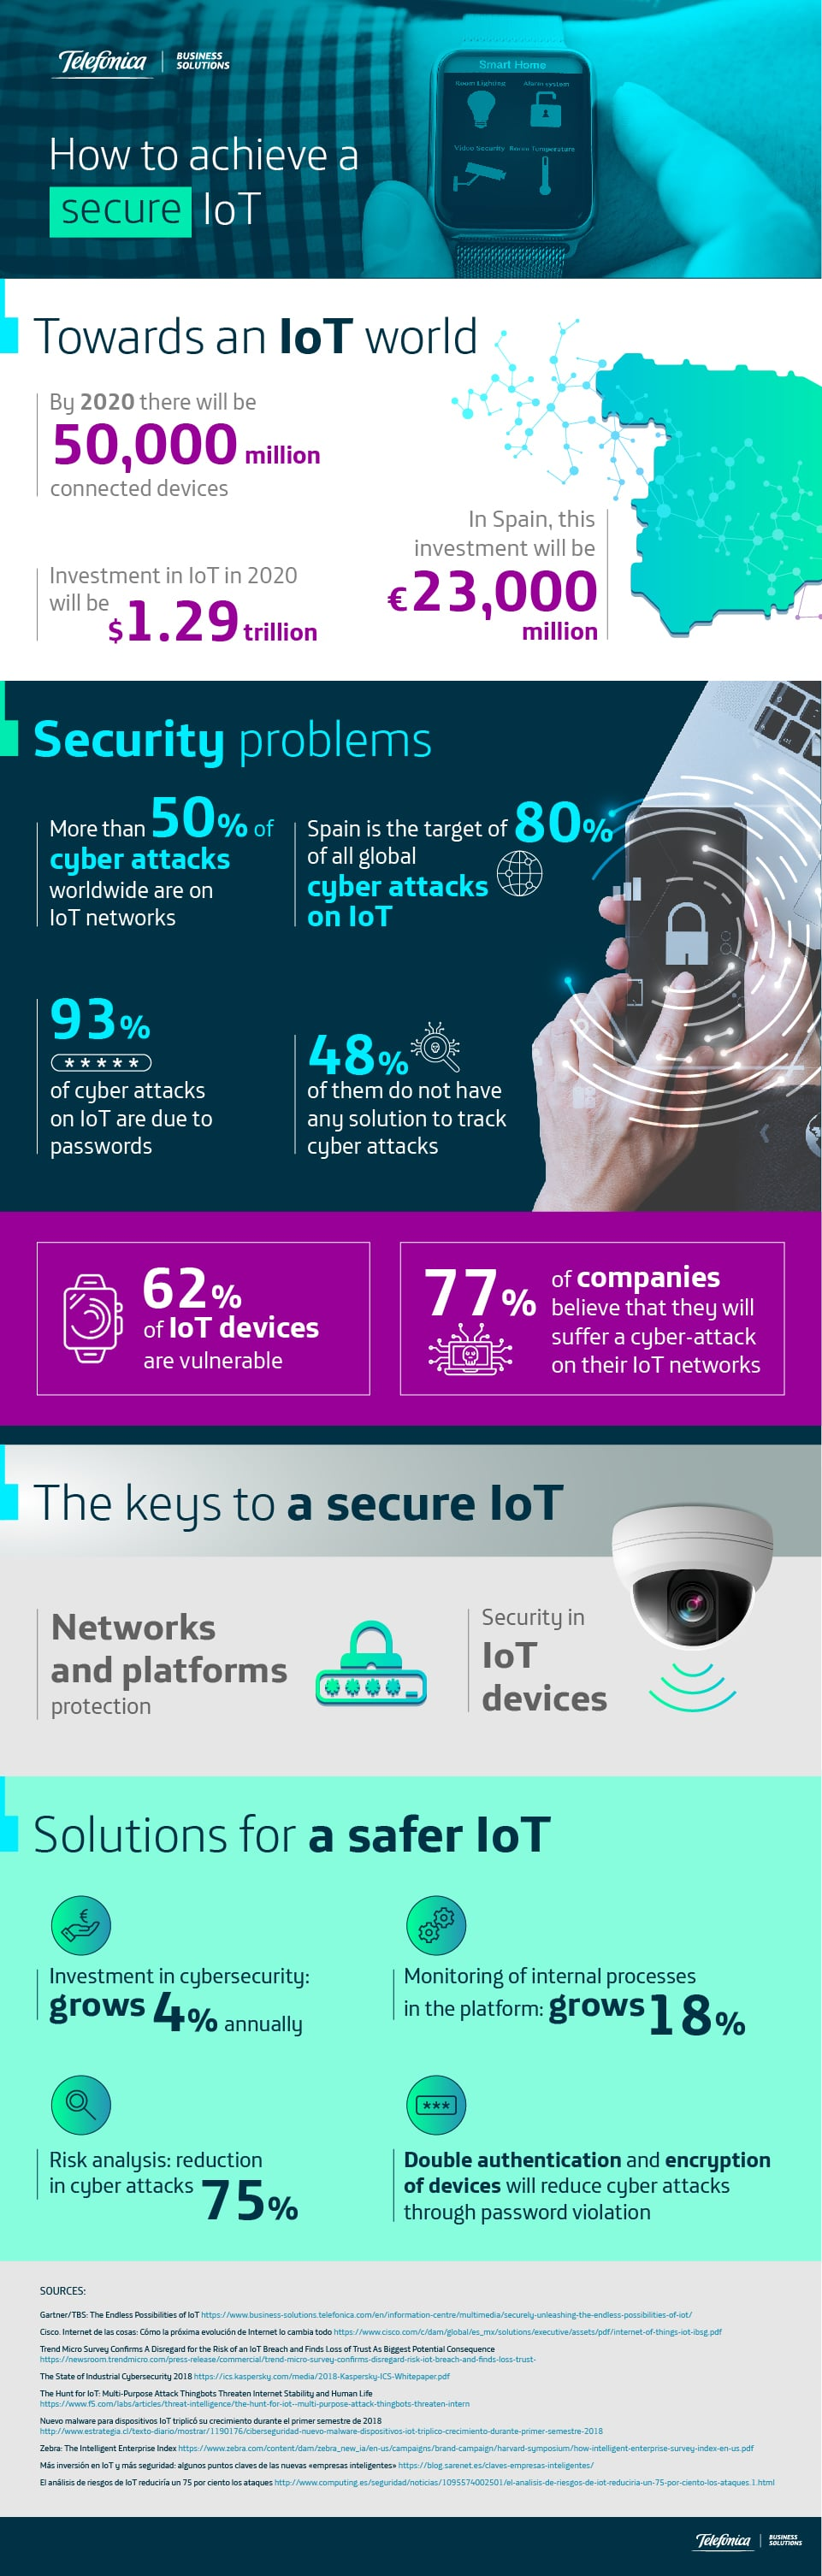 How to achieve a secure IoT